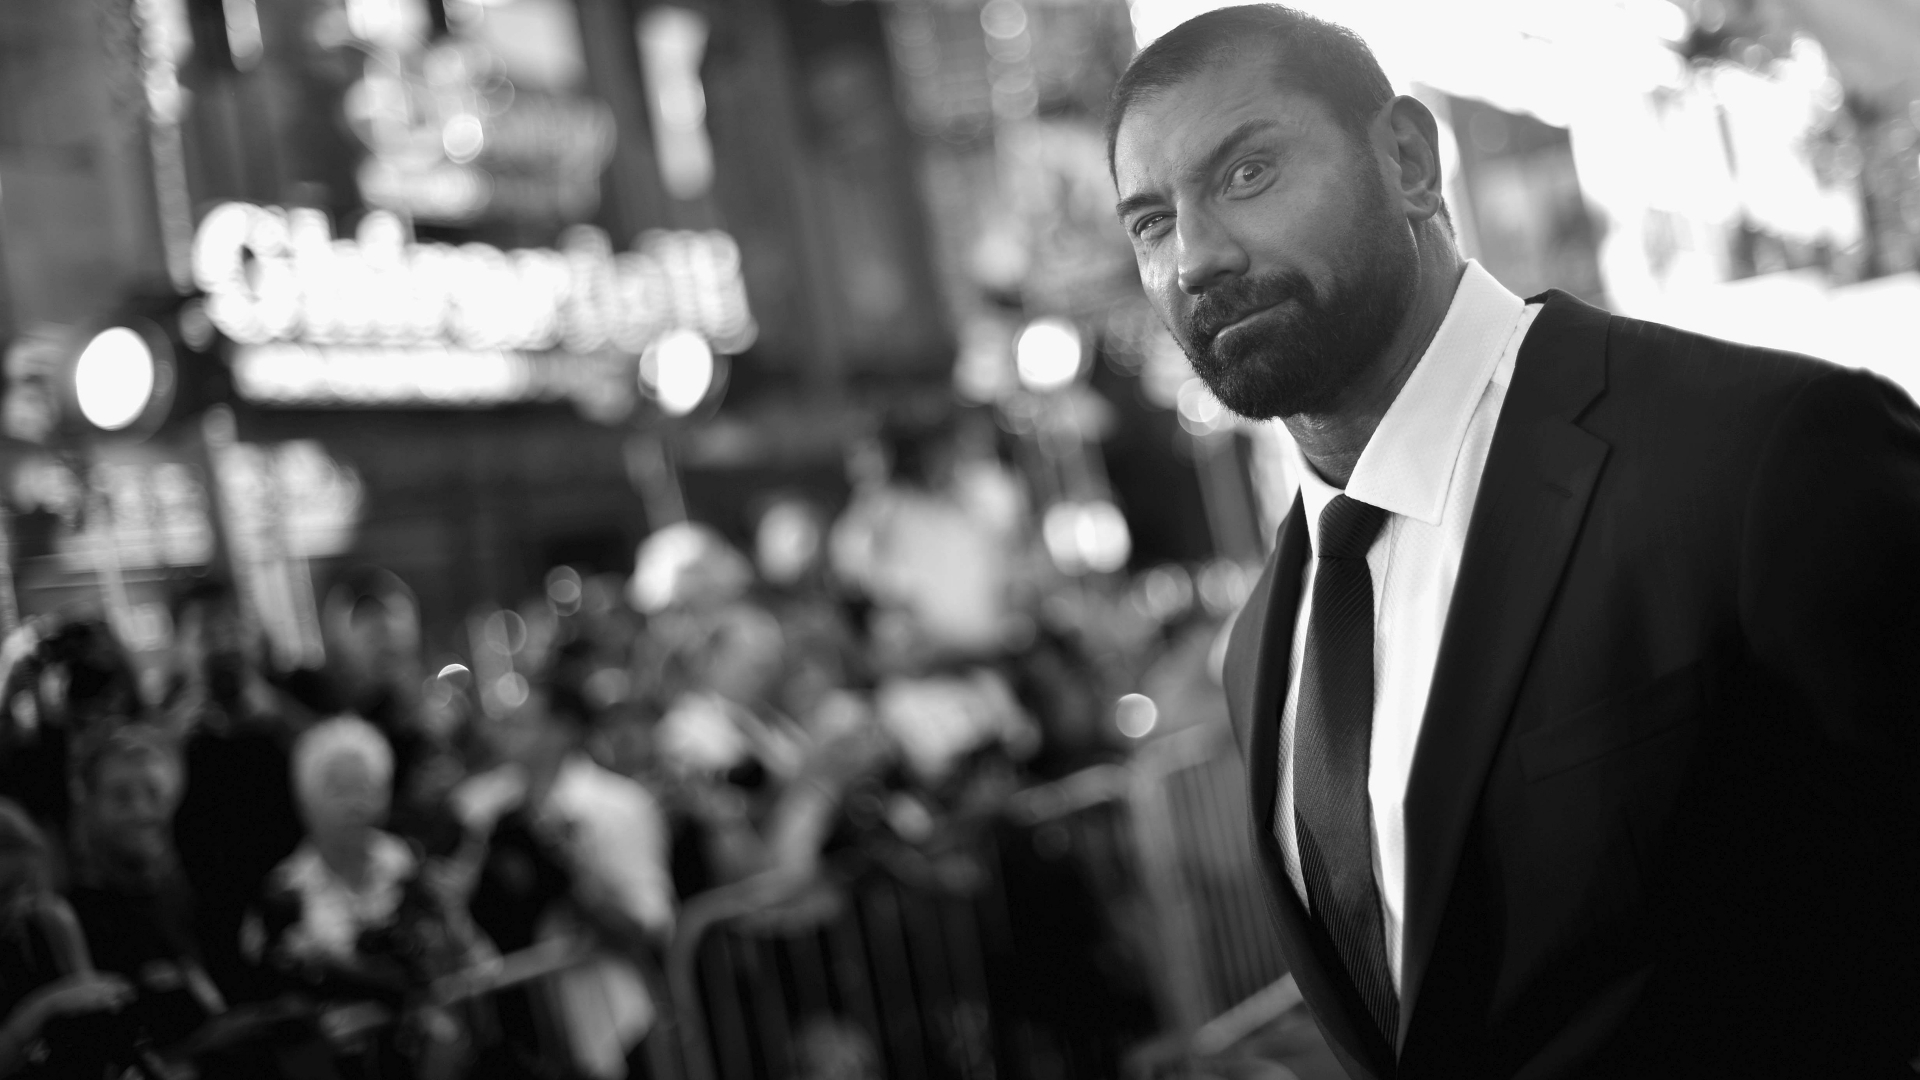 Dave Bautista Black and White for 1920 x 1080 HDTV 1080p resolution